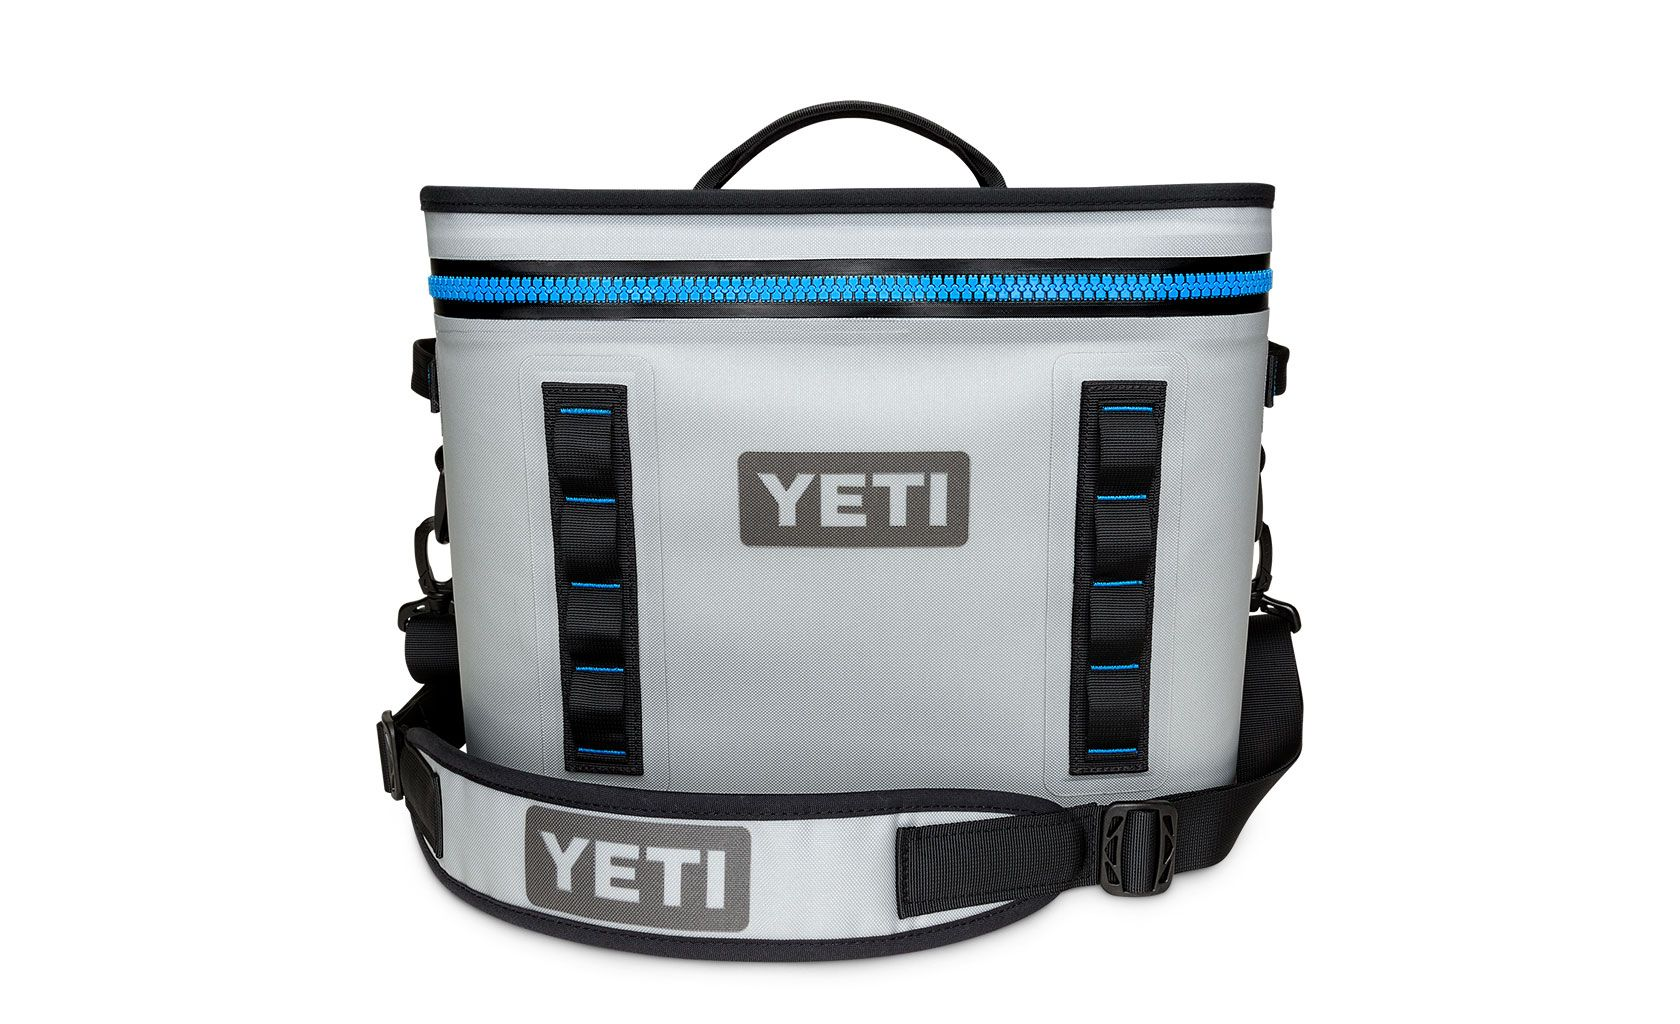 Academy deal get 50 gift card when you buy yeti cooler